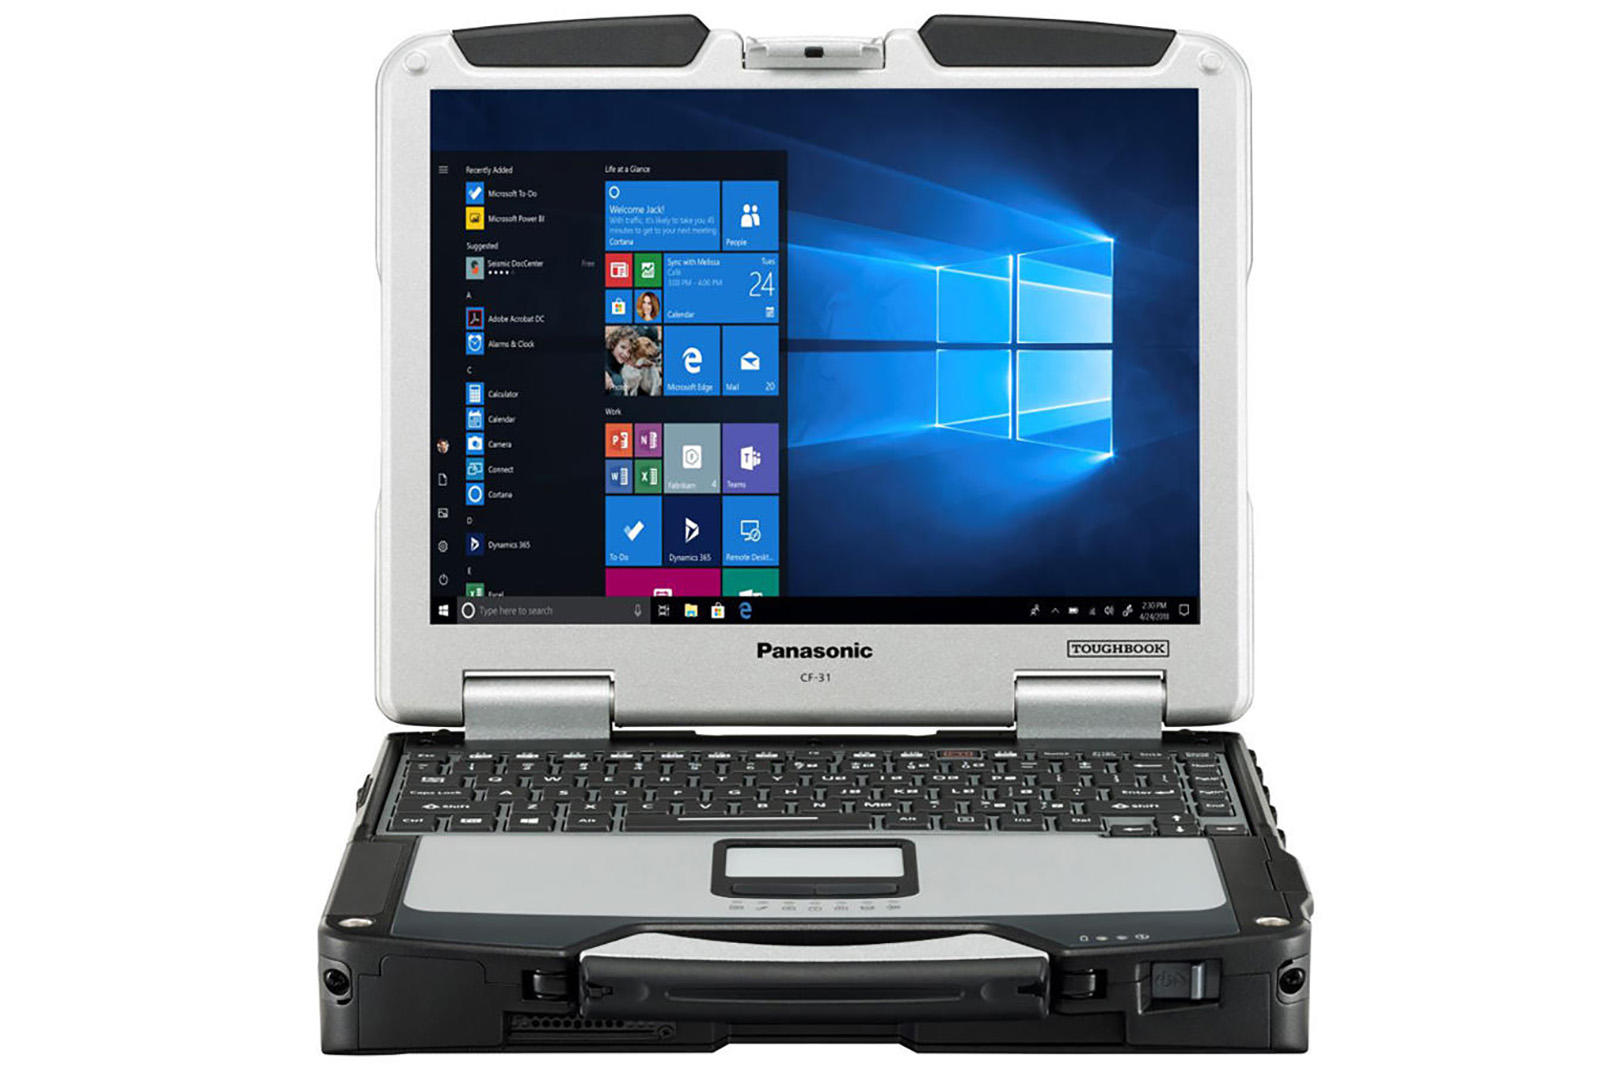 panasonic-toughbook-31-rugged-laptop-notebook.jpg